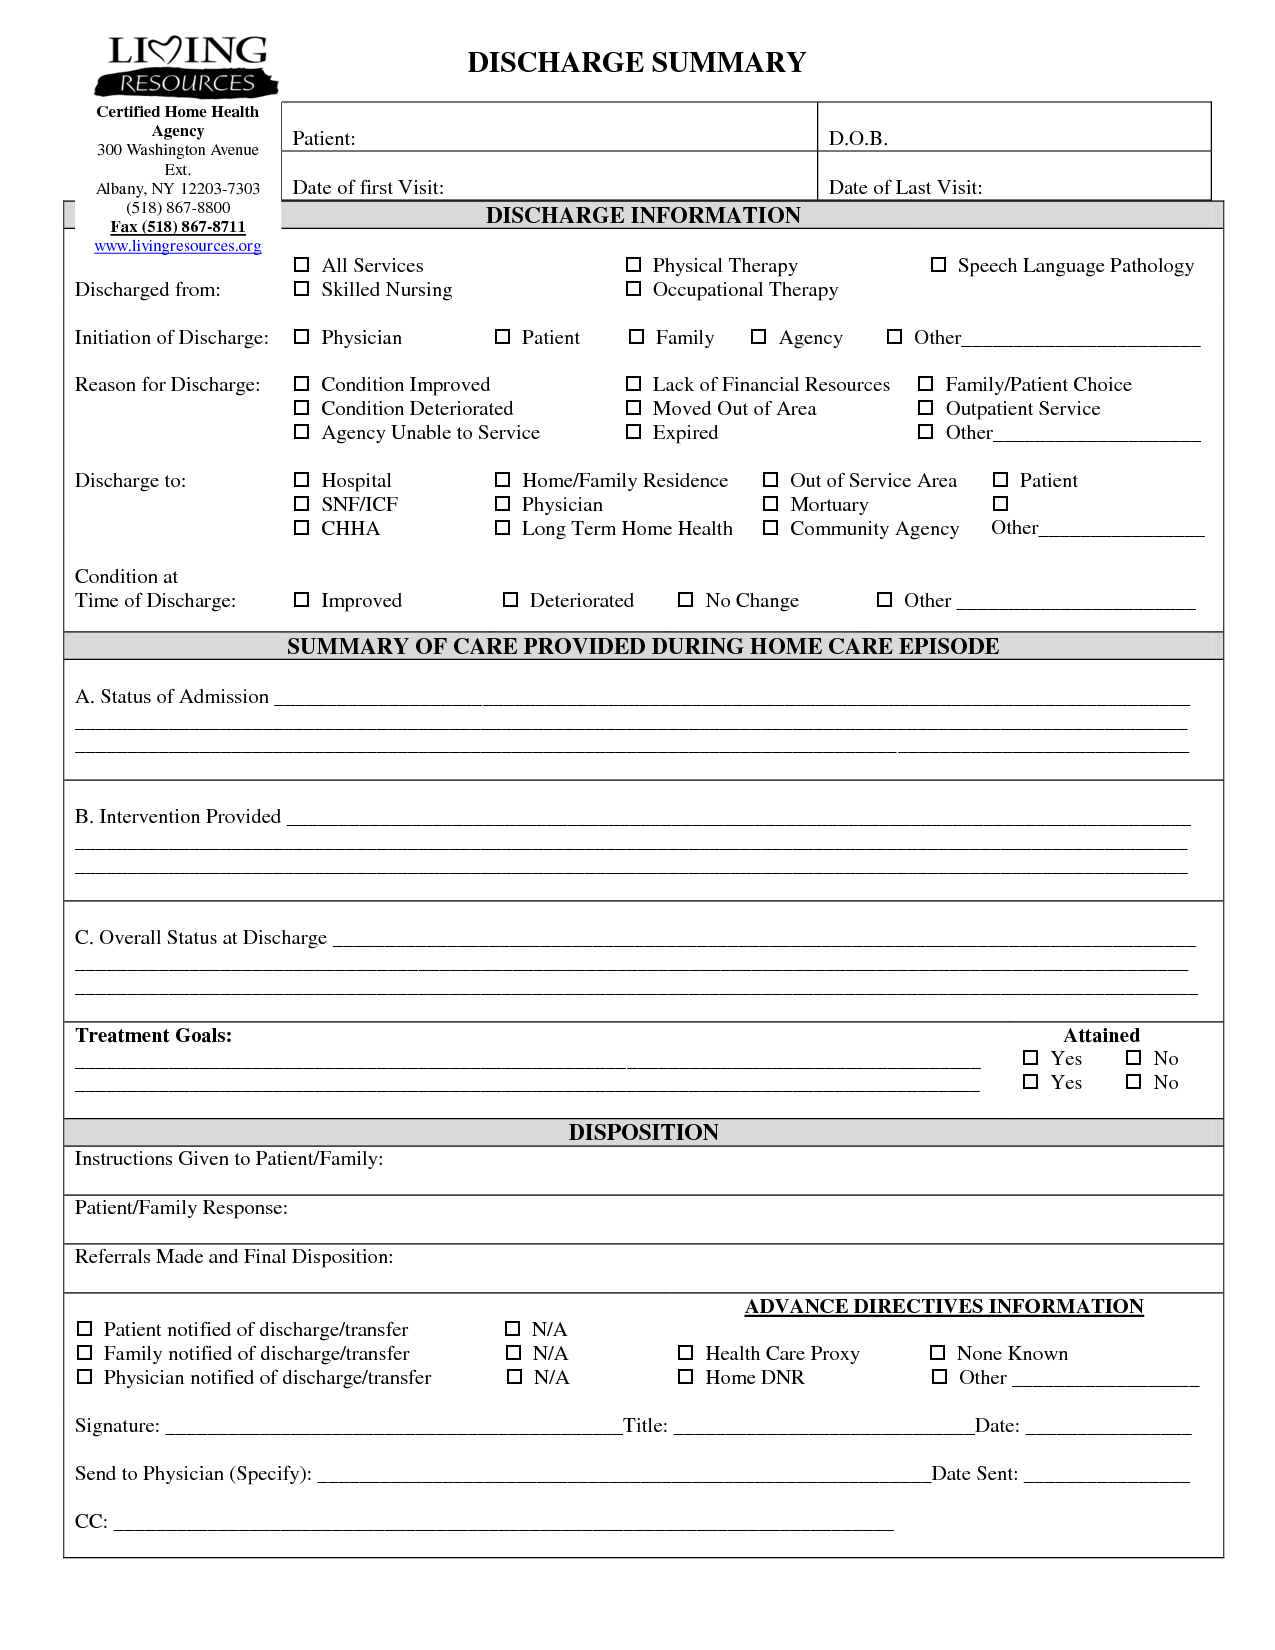 Stroke Progress Note Physical Therapy Template